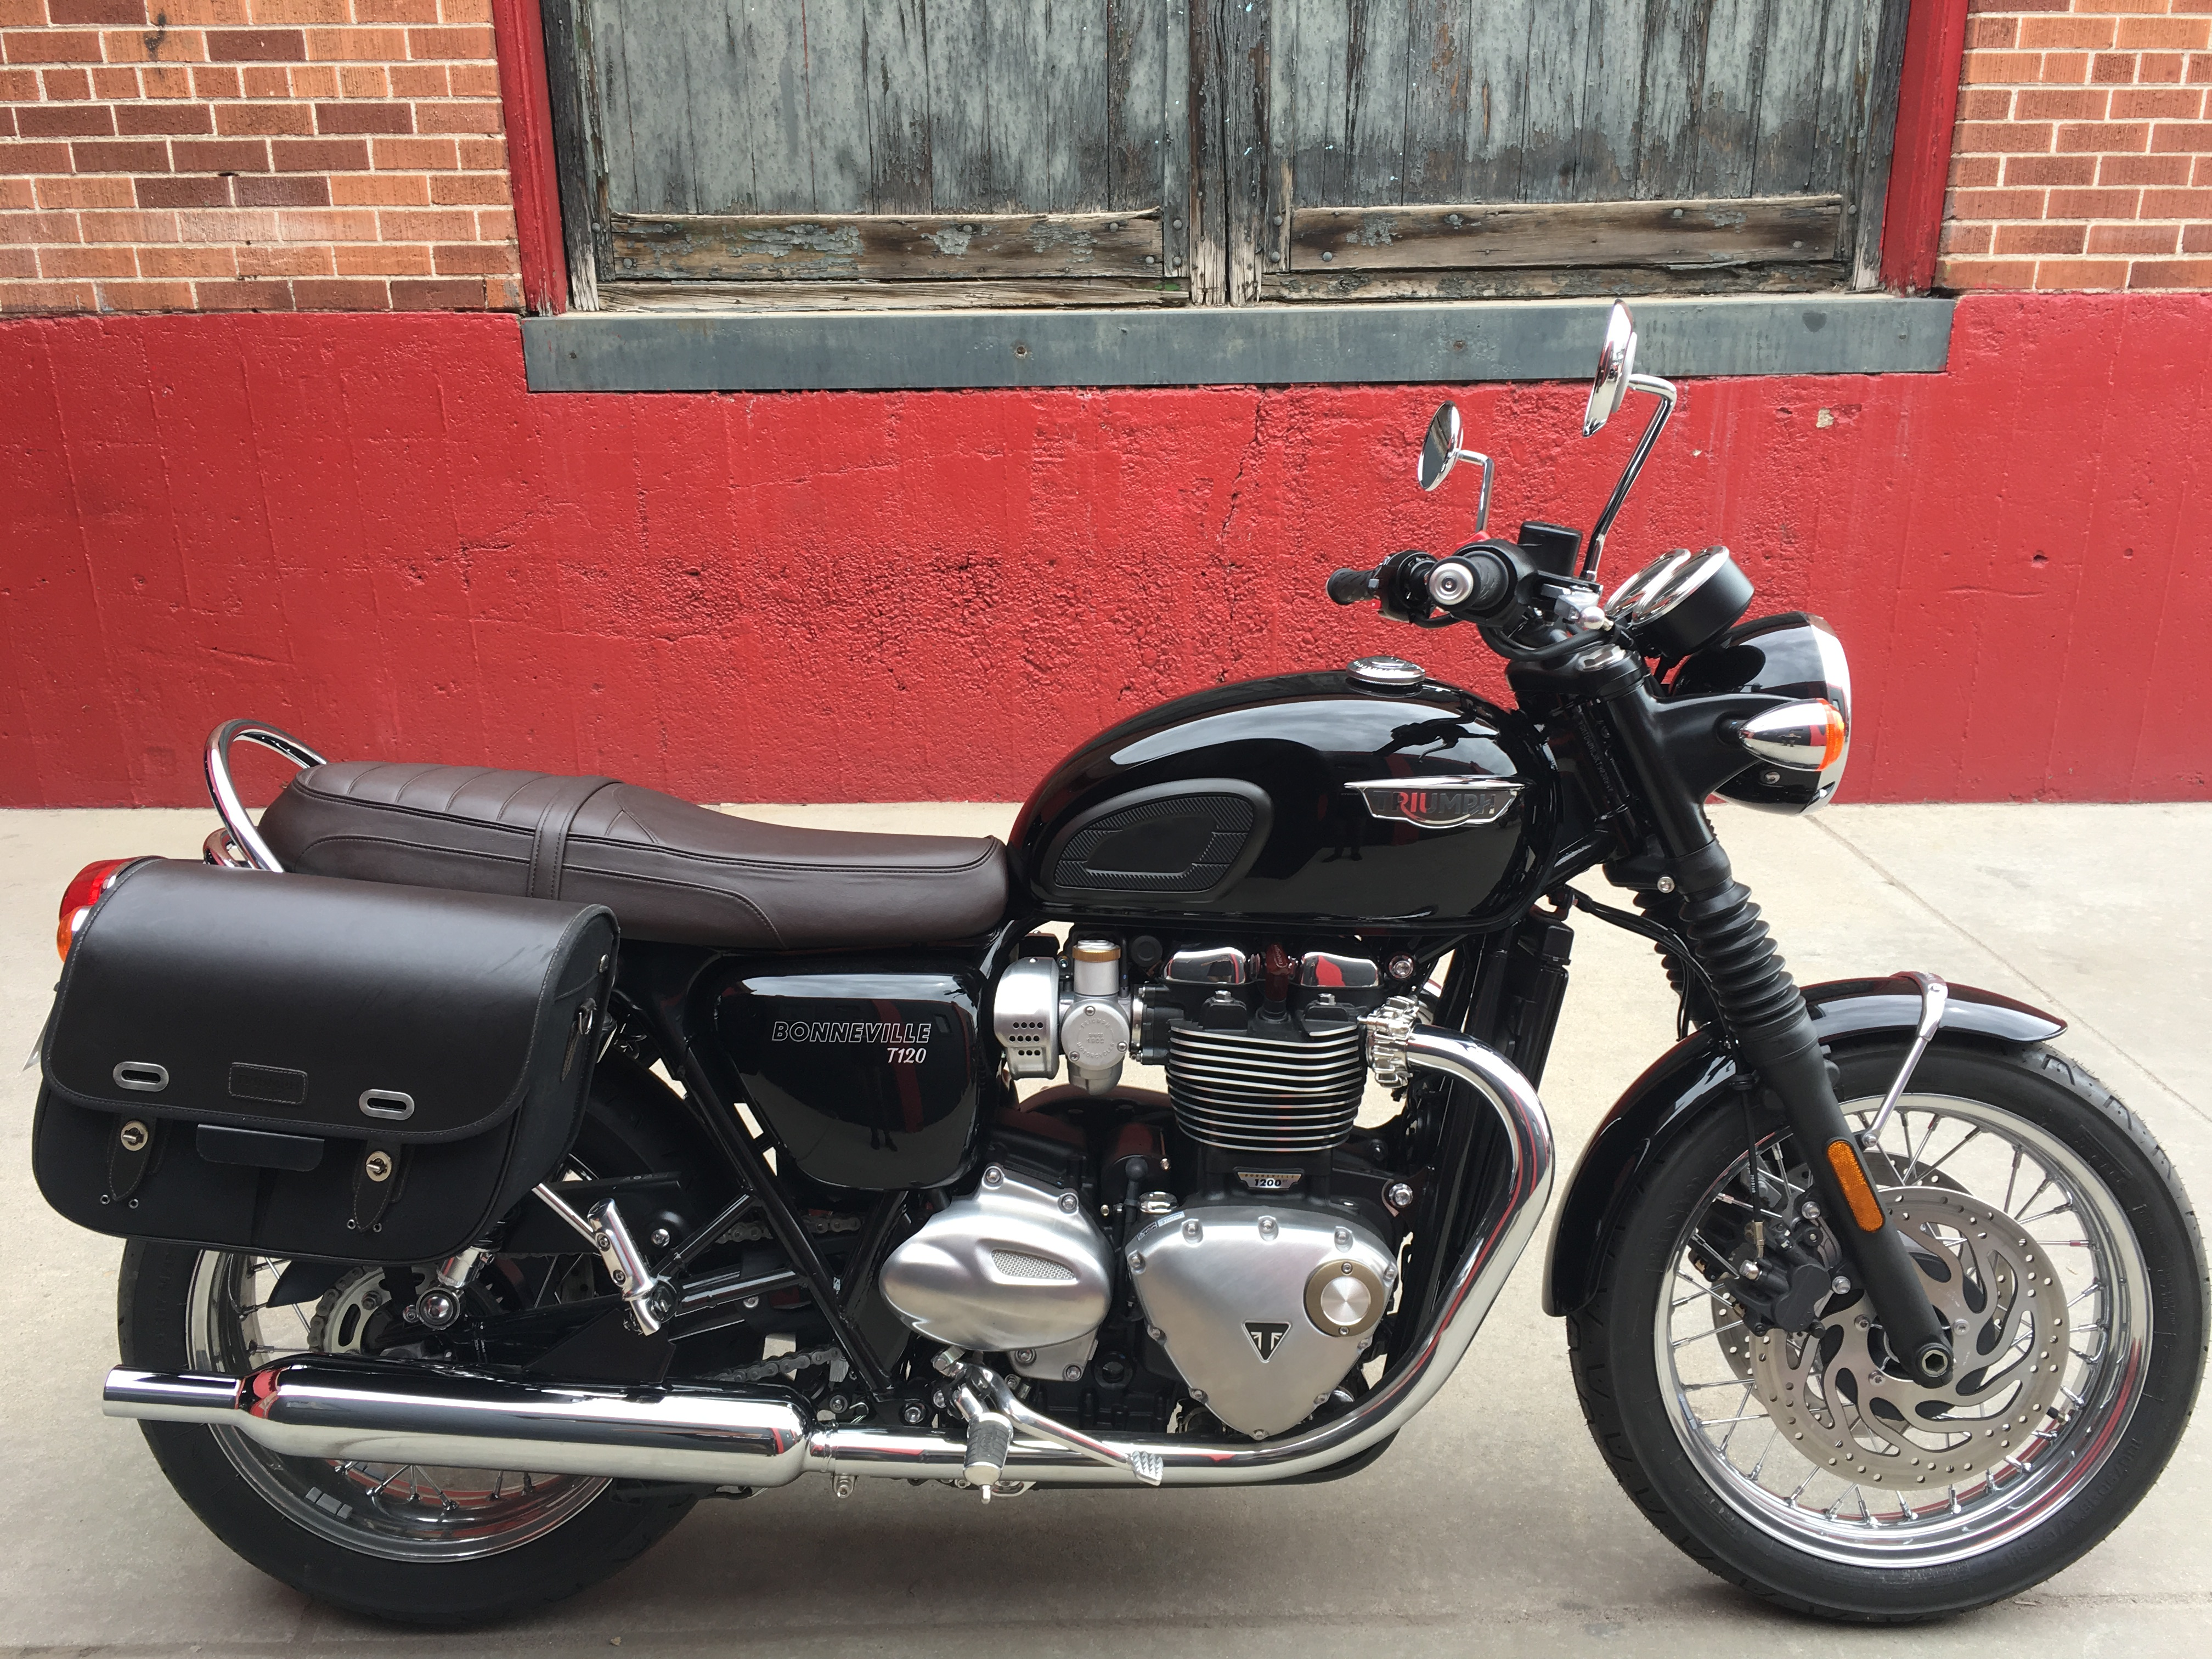 New 2019 TRIUMPH BONNEVILLE T120 DEMO